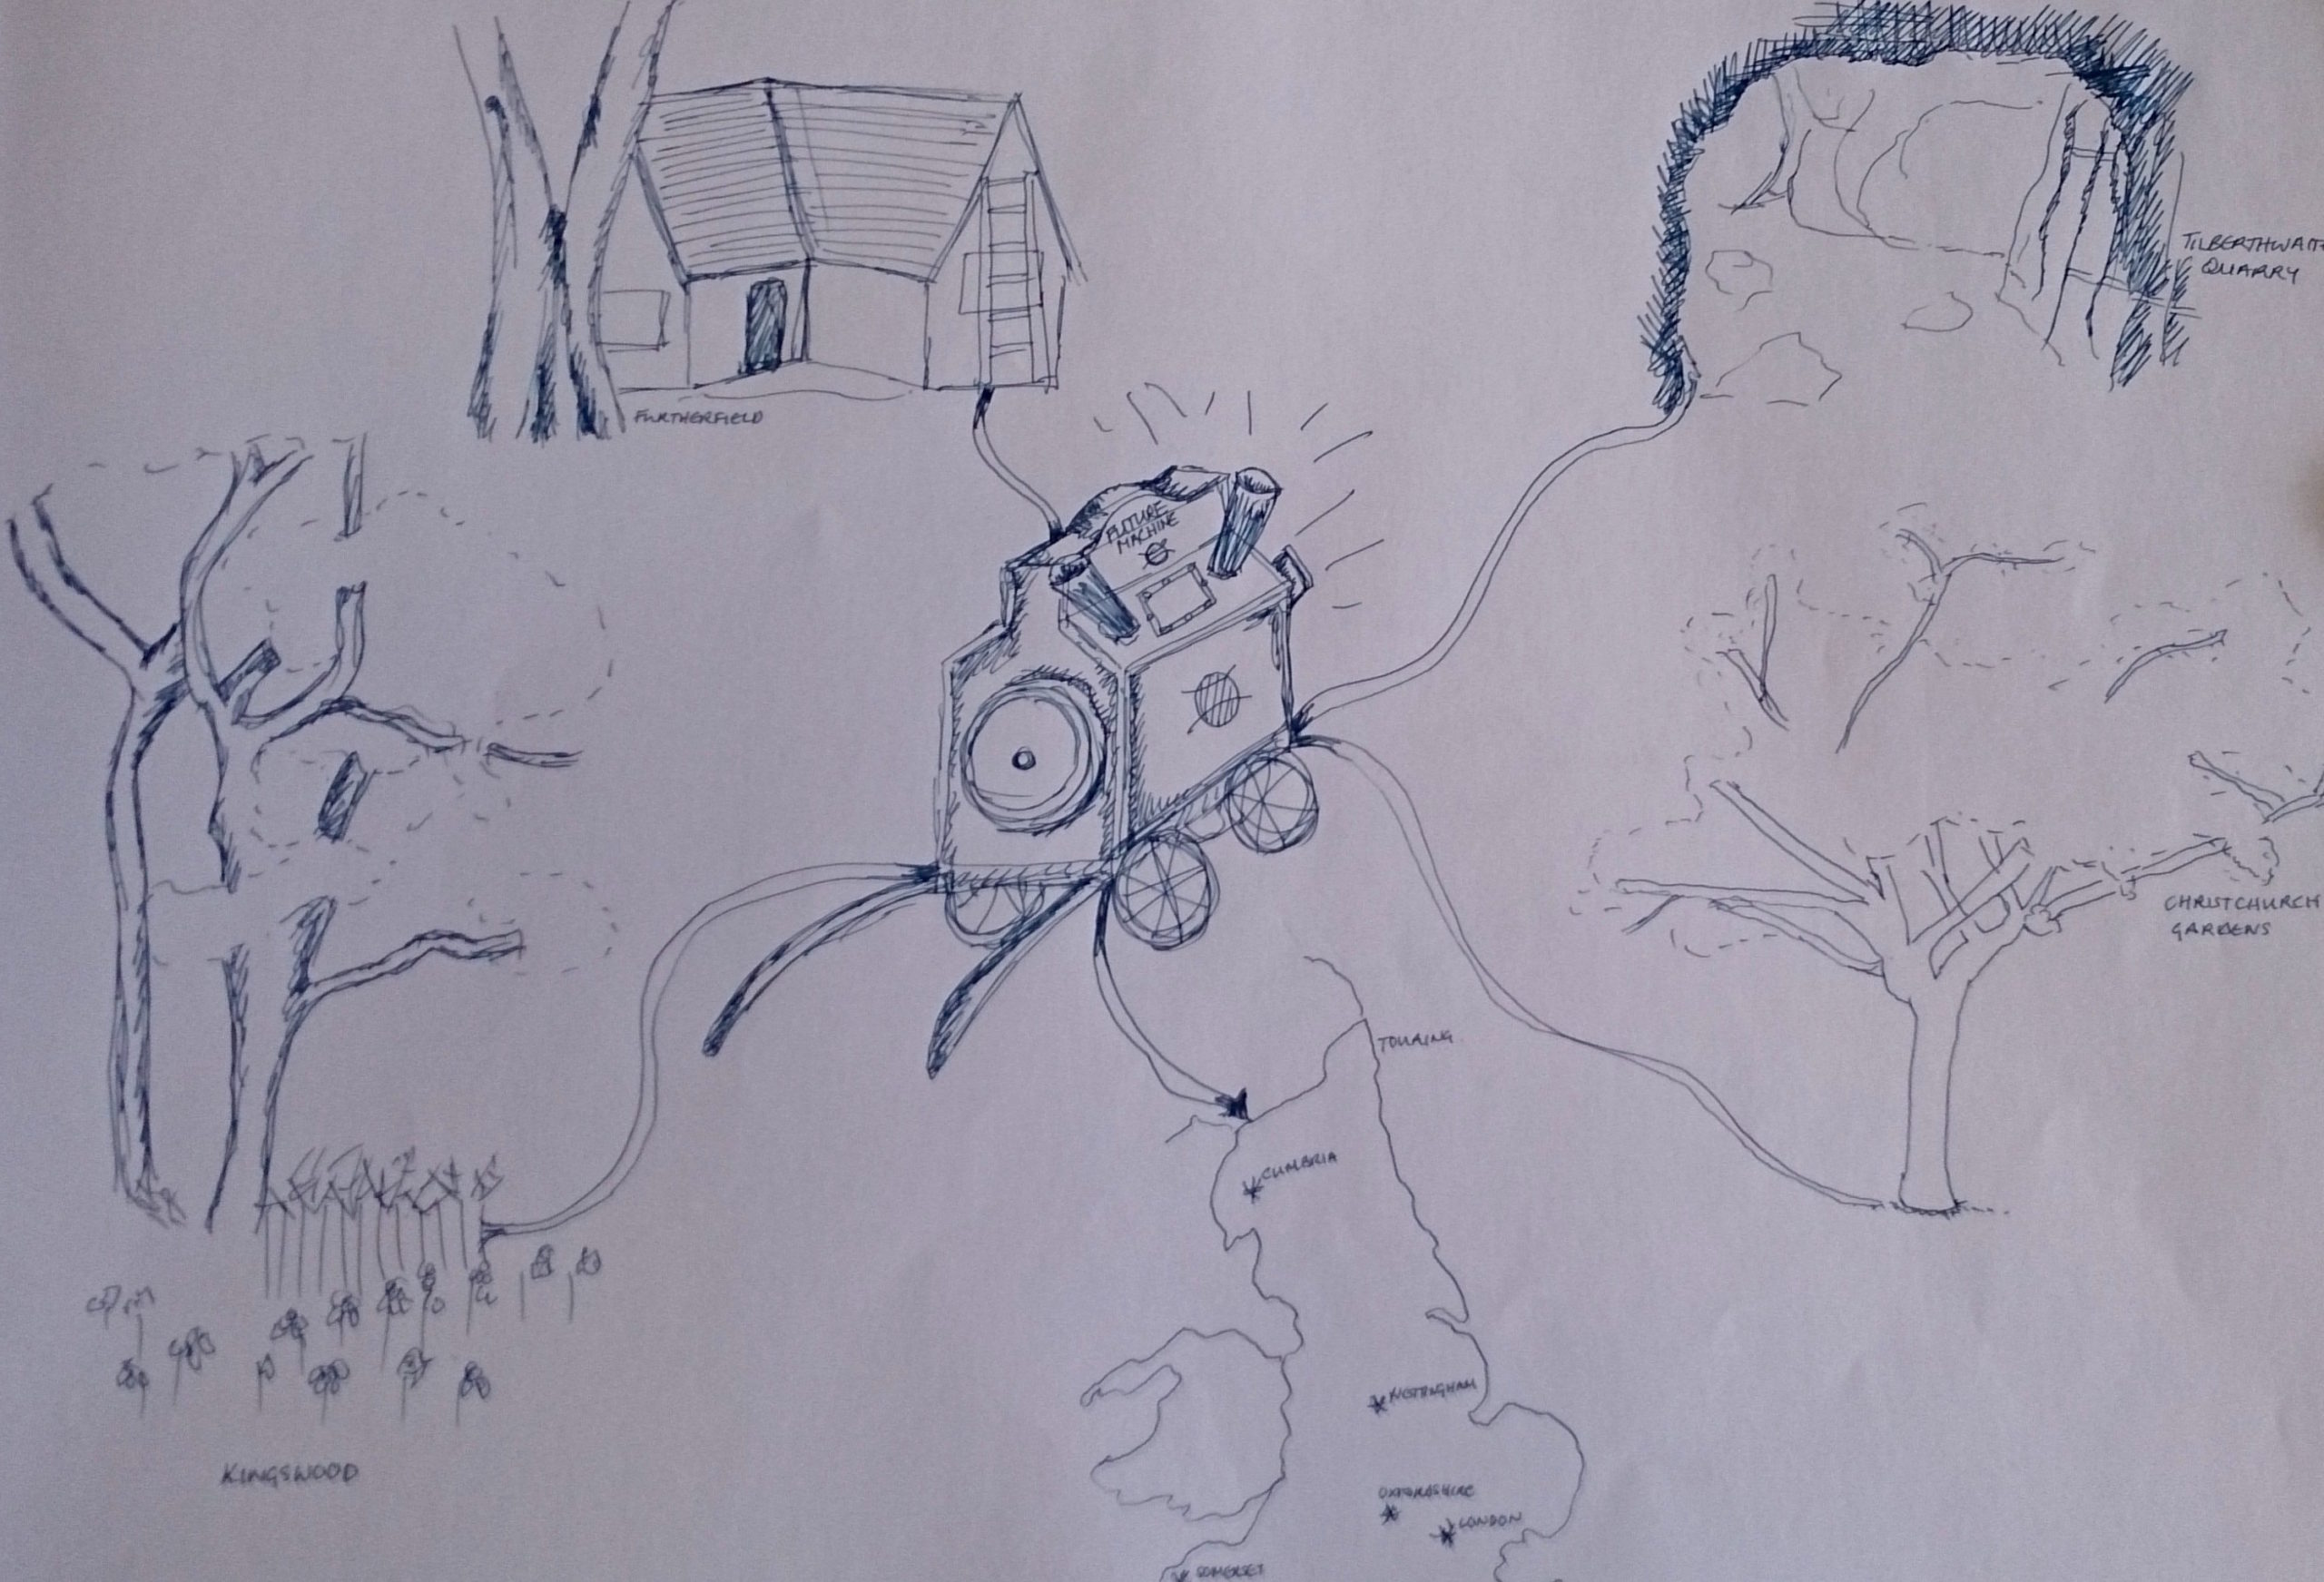 sketch of the Future Machine travelling to Finsbury Park, Tilberthwaite Quarry, Christ Church Gardens, Kingswood and a map of england showing where each place is on the map